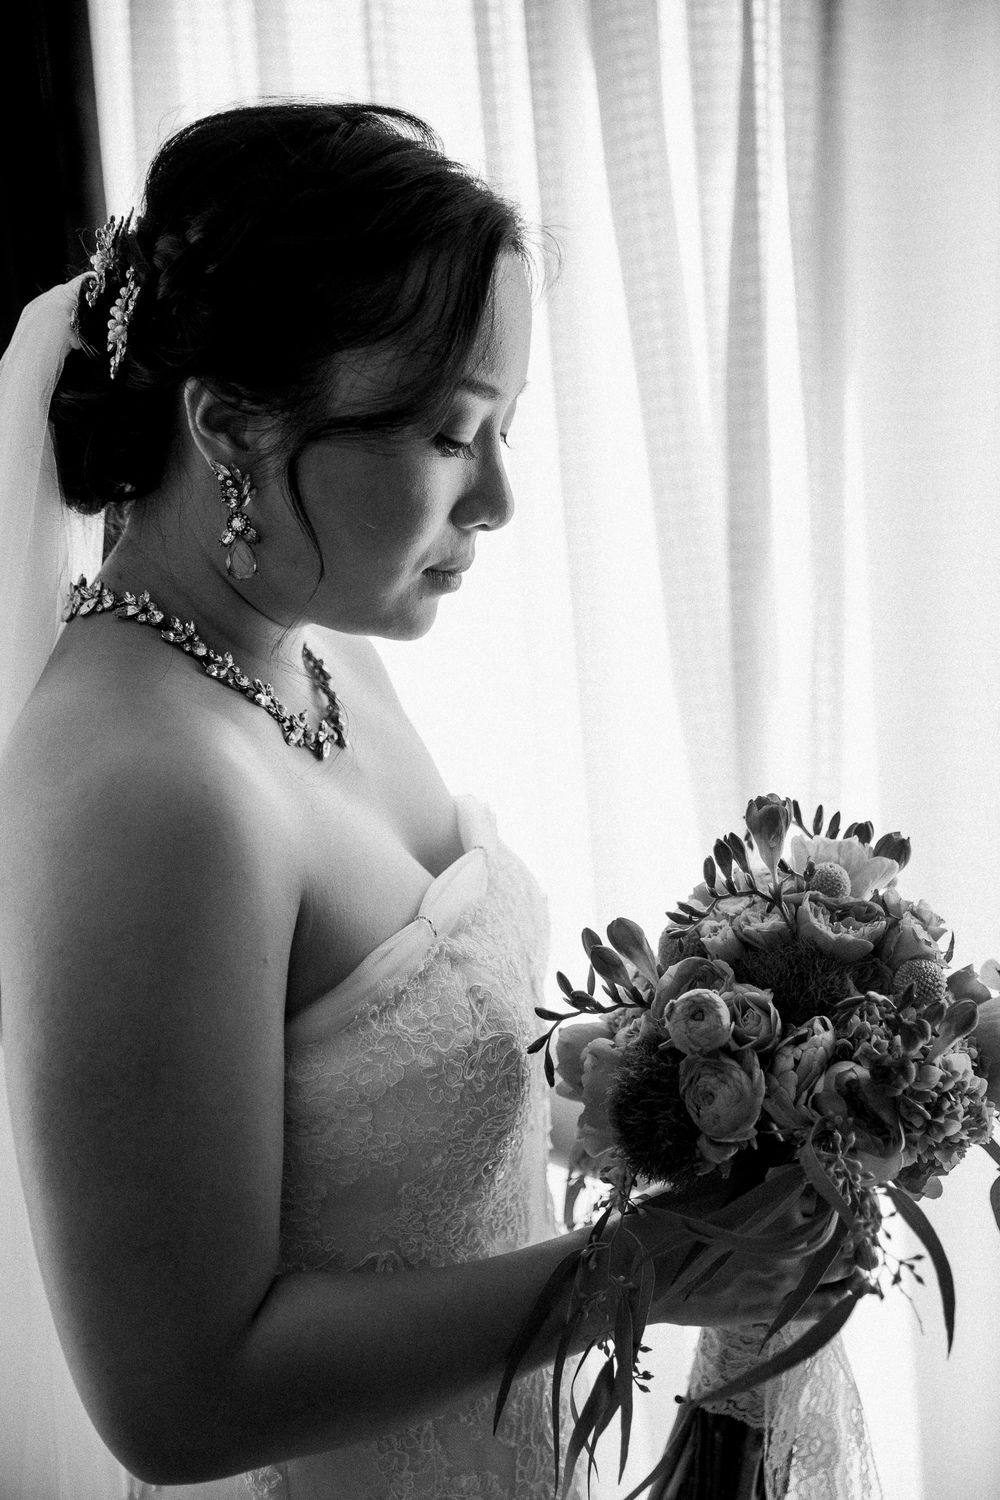 The Mill Wedding Spring Lake, NJ-15.jpg